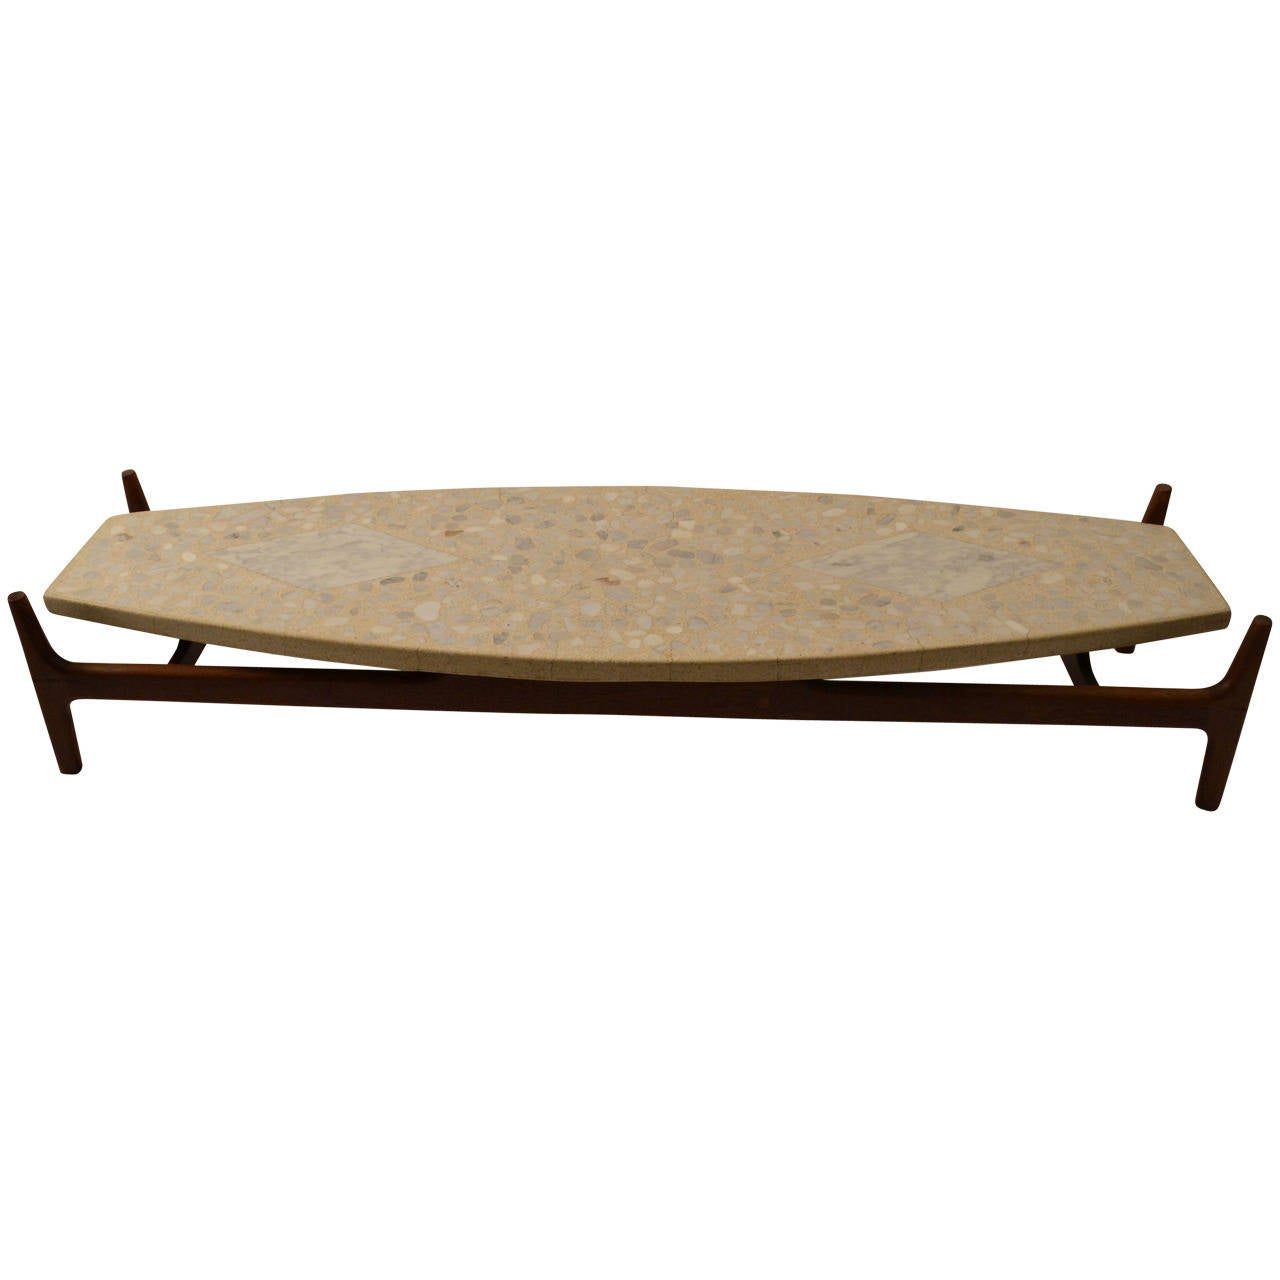 Surfboard Tables For Sale Probber Surfboard Terrazzo Top Coffee Or Cocktail Table